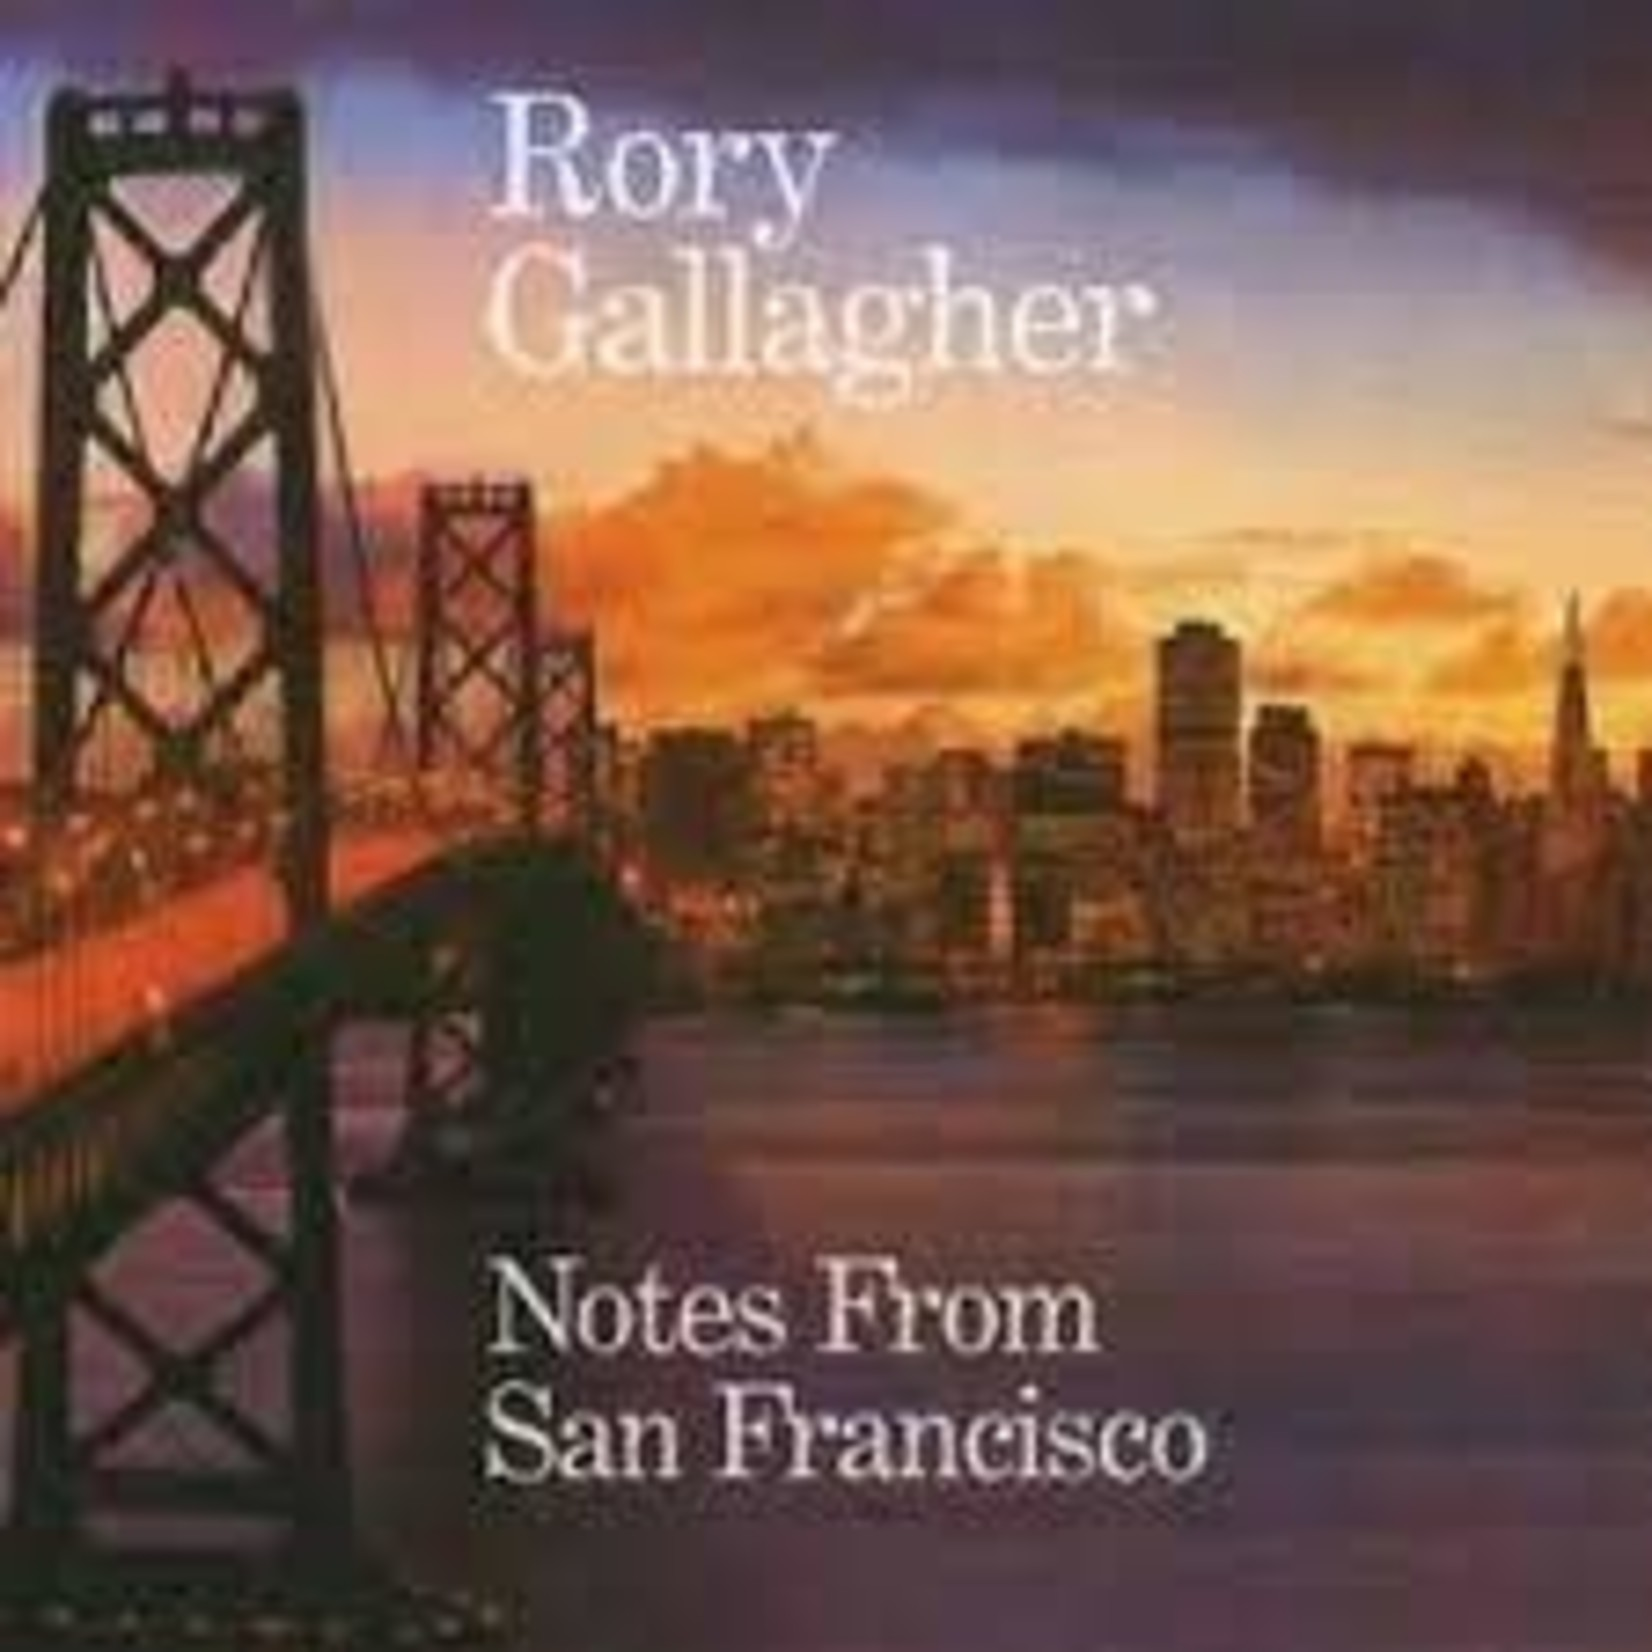 RORY GALLAGHER  - NOTES FROM SAN FRANCISCO  (VINYL)